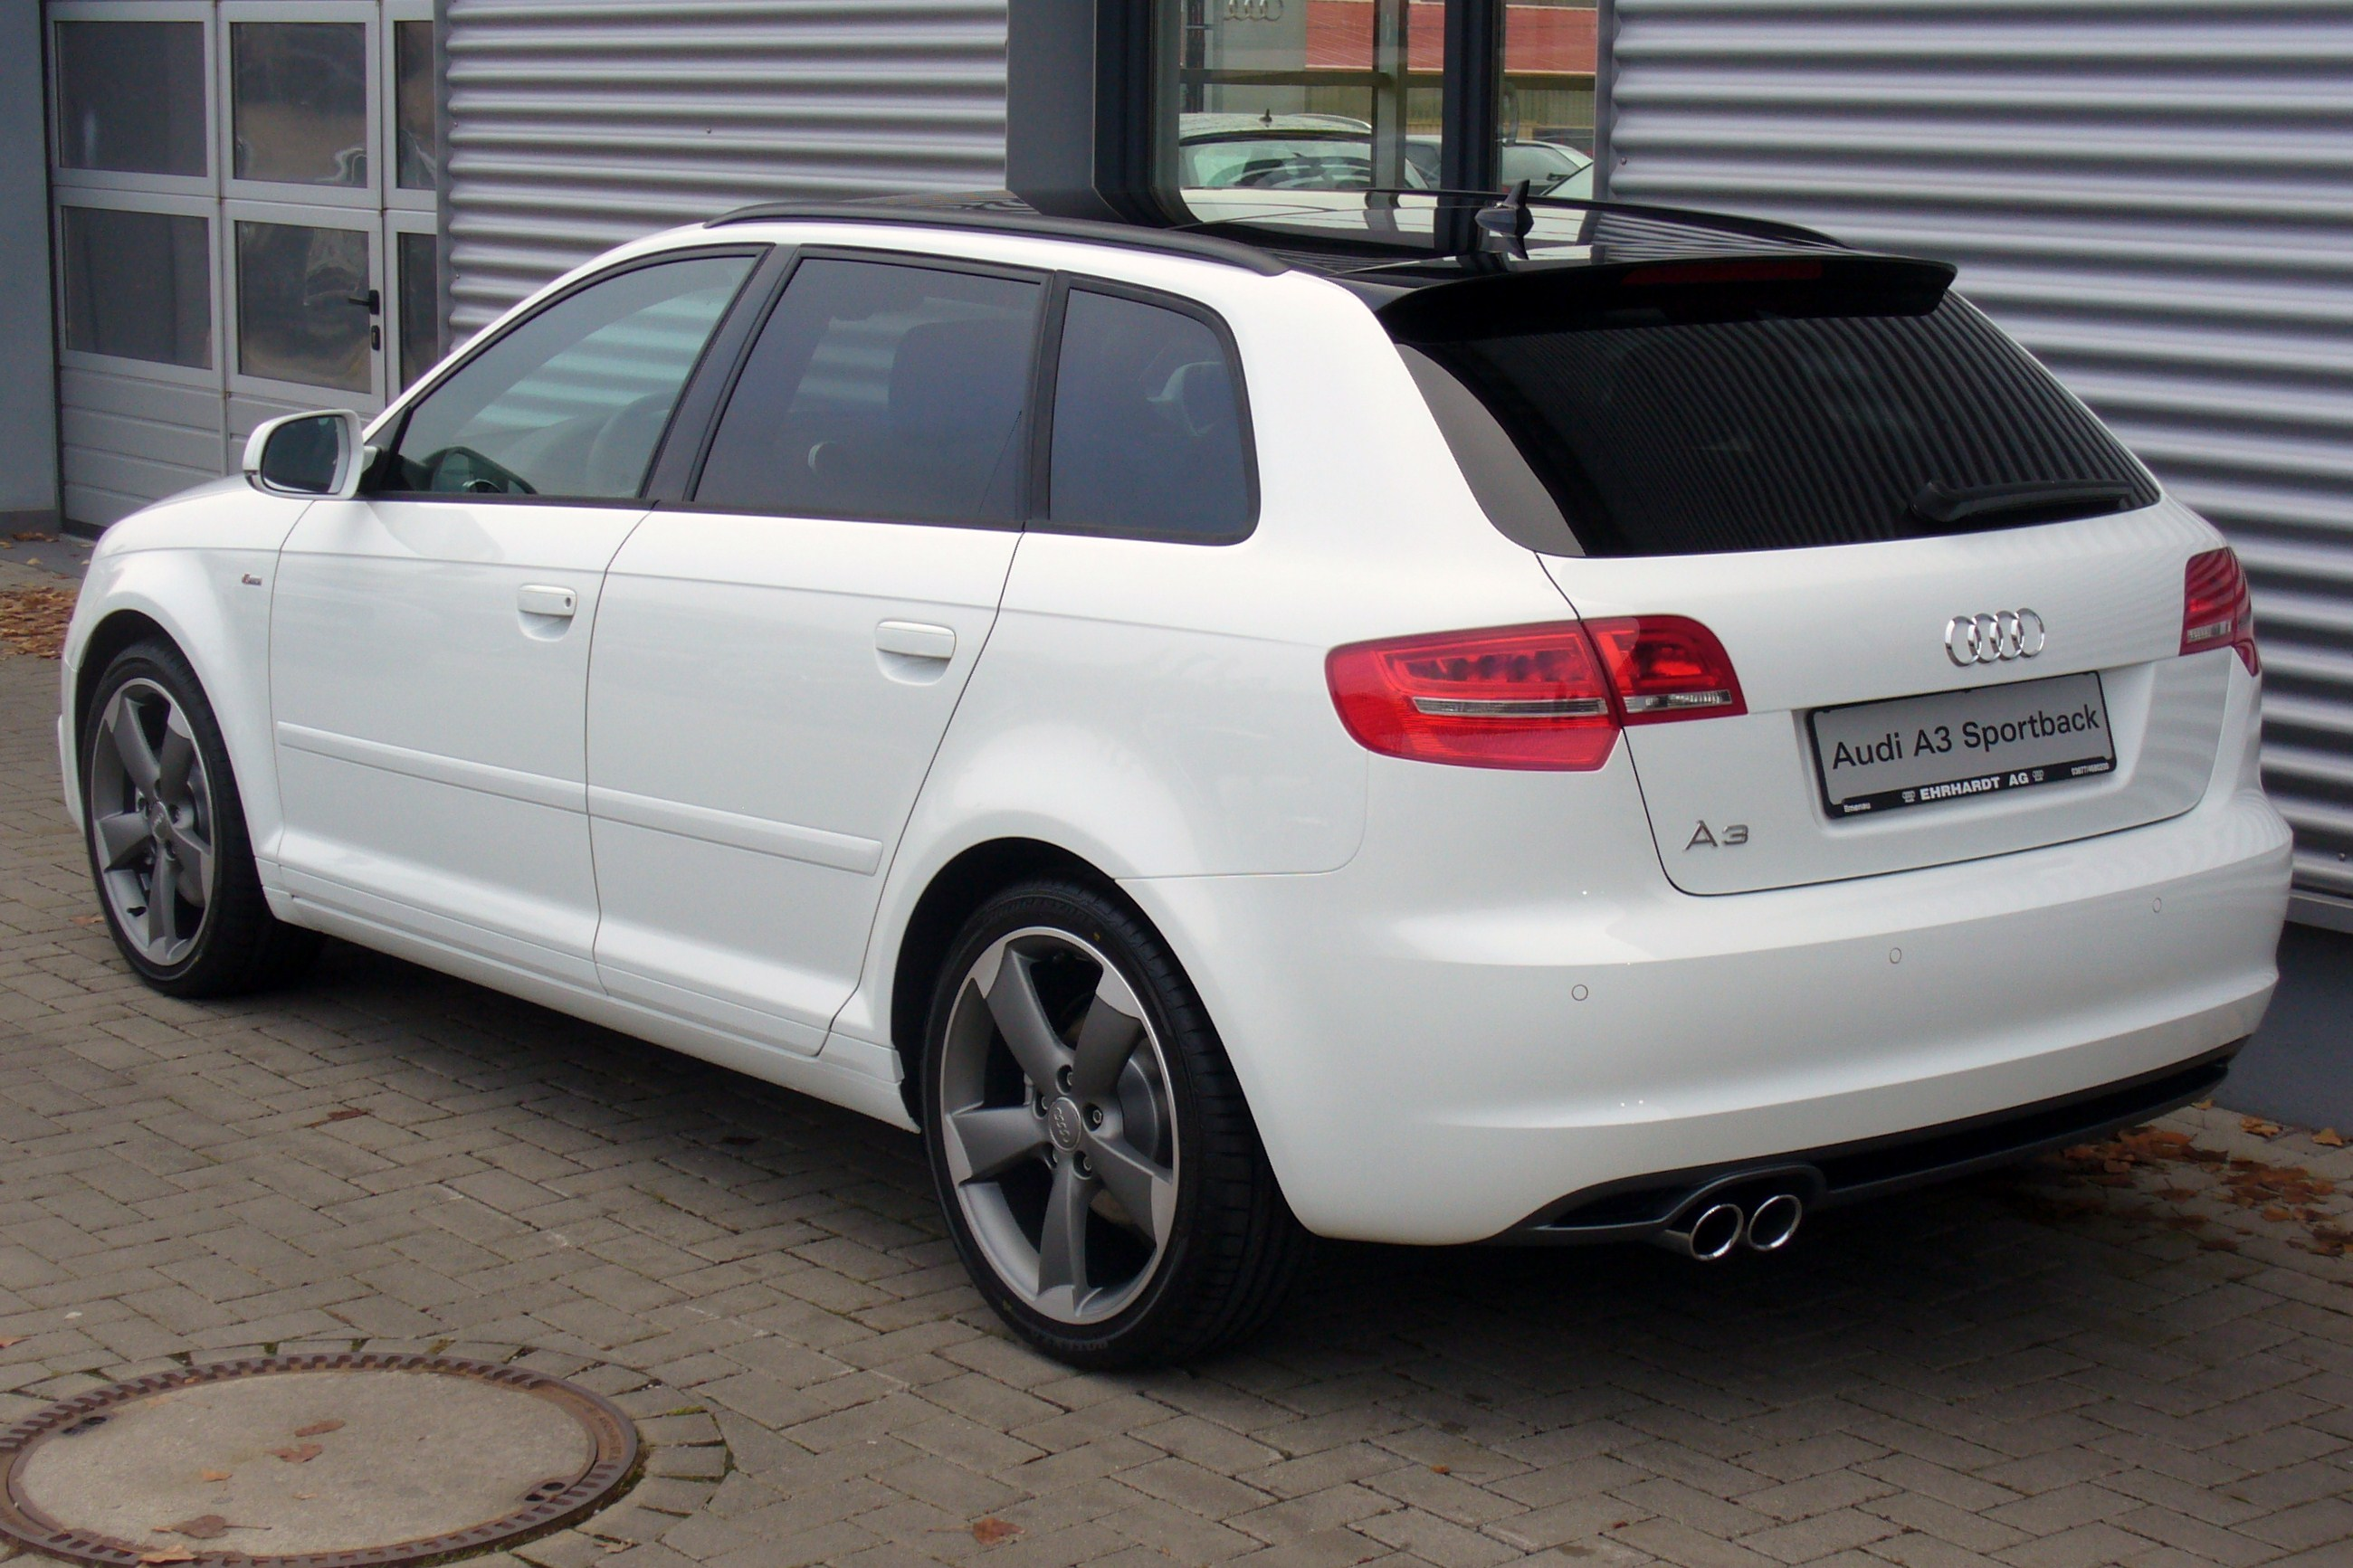 file:audi a3 sportback ambition s line advanced 2.0 tdi quattro